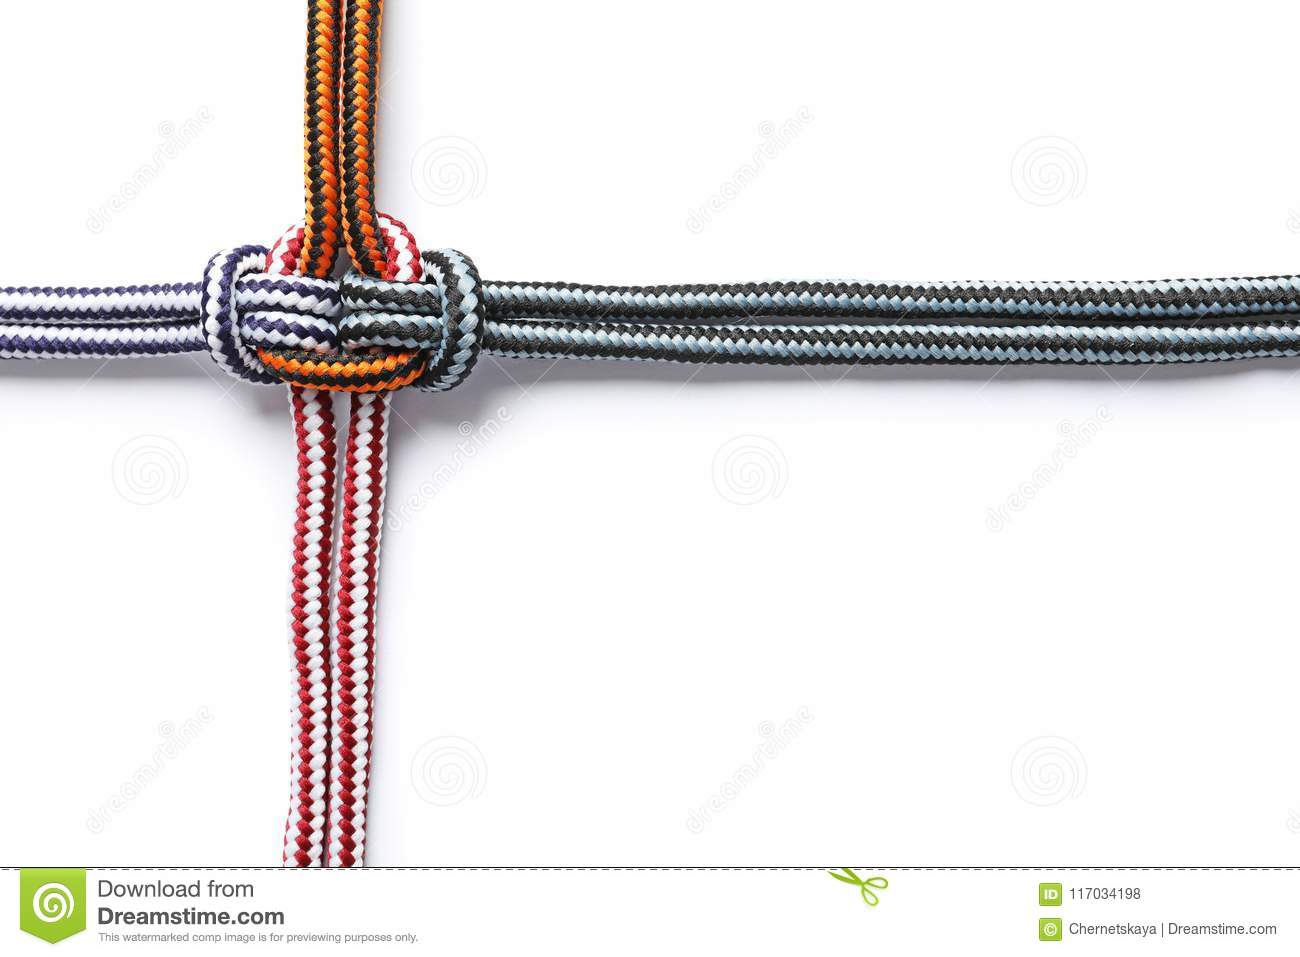 Colorful Ropes Tied Together On White Background Stock Photo - Image